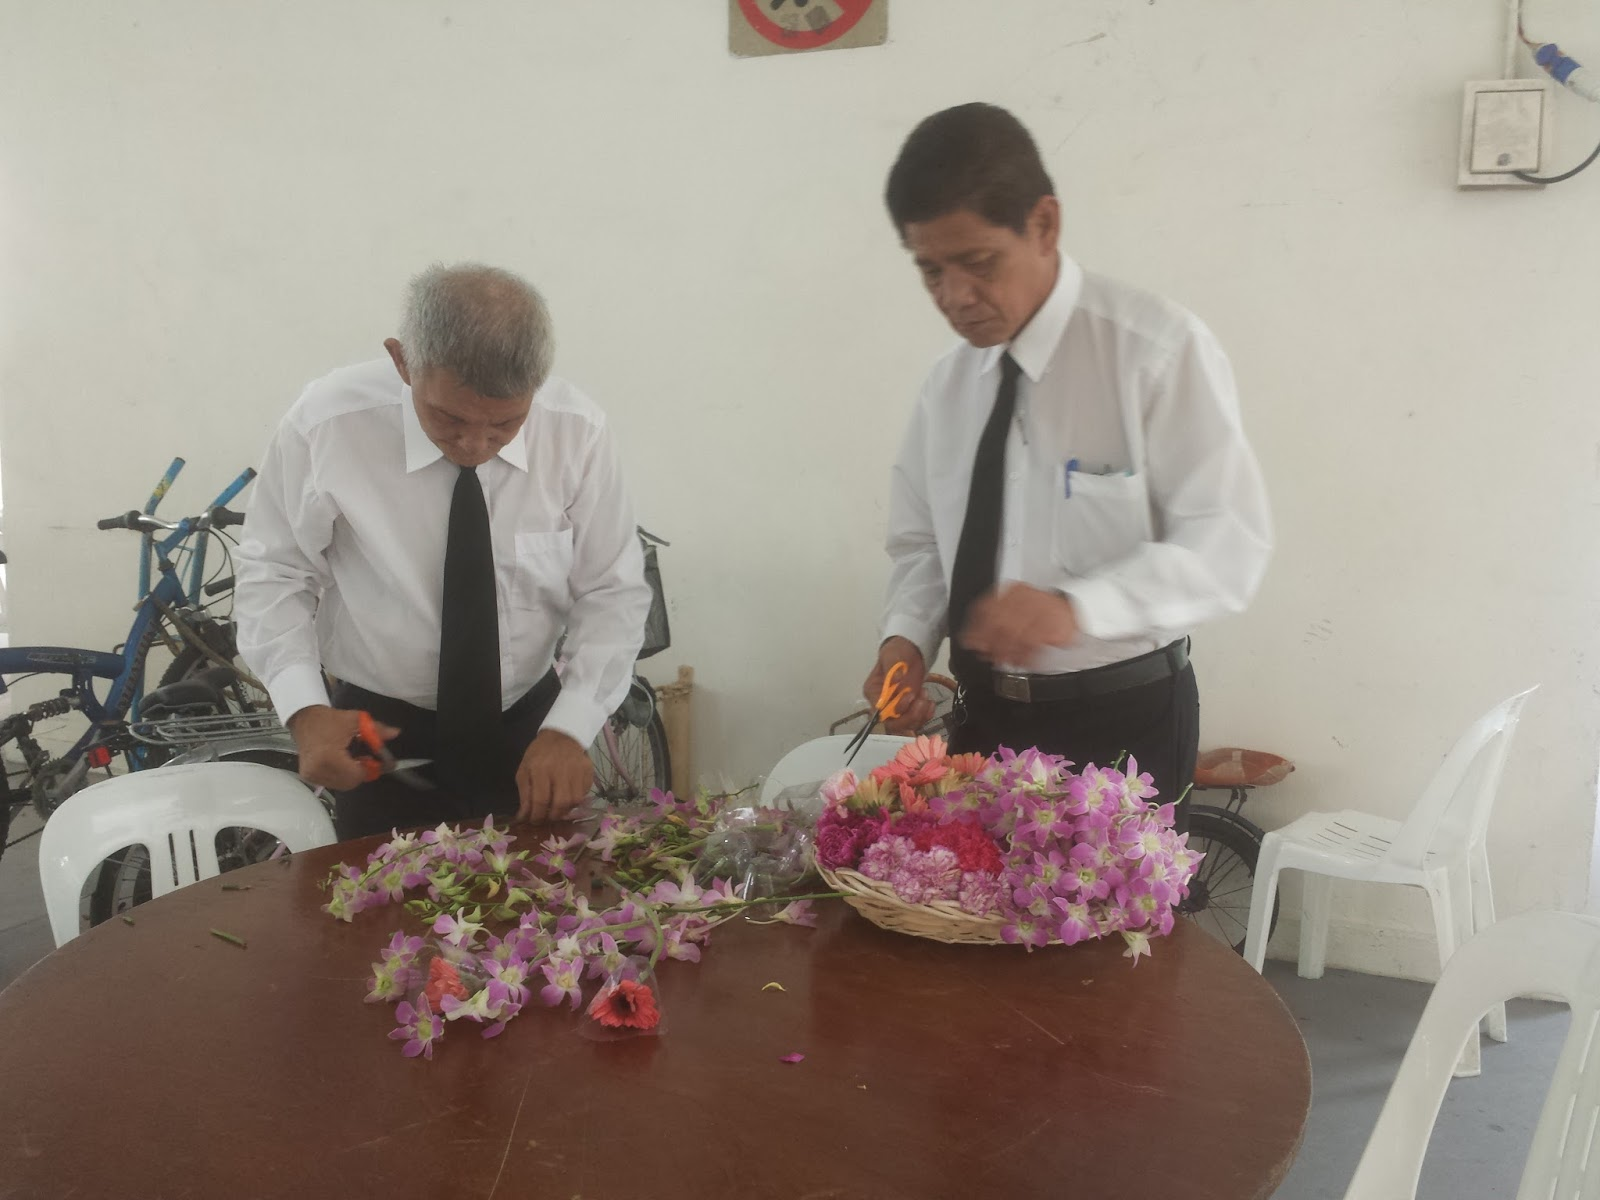 Somewhere in singapore blog funeral of eric chan 2 staff from the undertaker cutting the flowers for use to place at the coffin after taking a last look at the deceased at mandai crematorium and izmirmasajfo